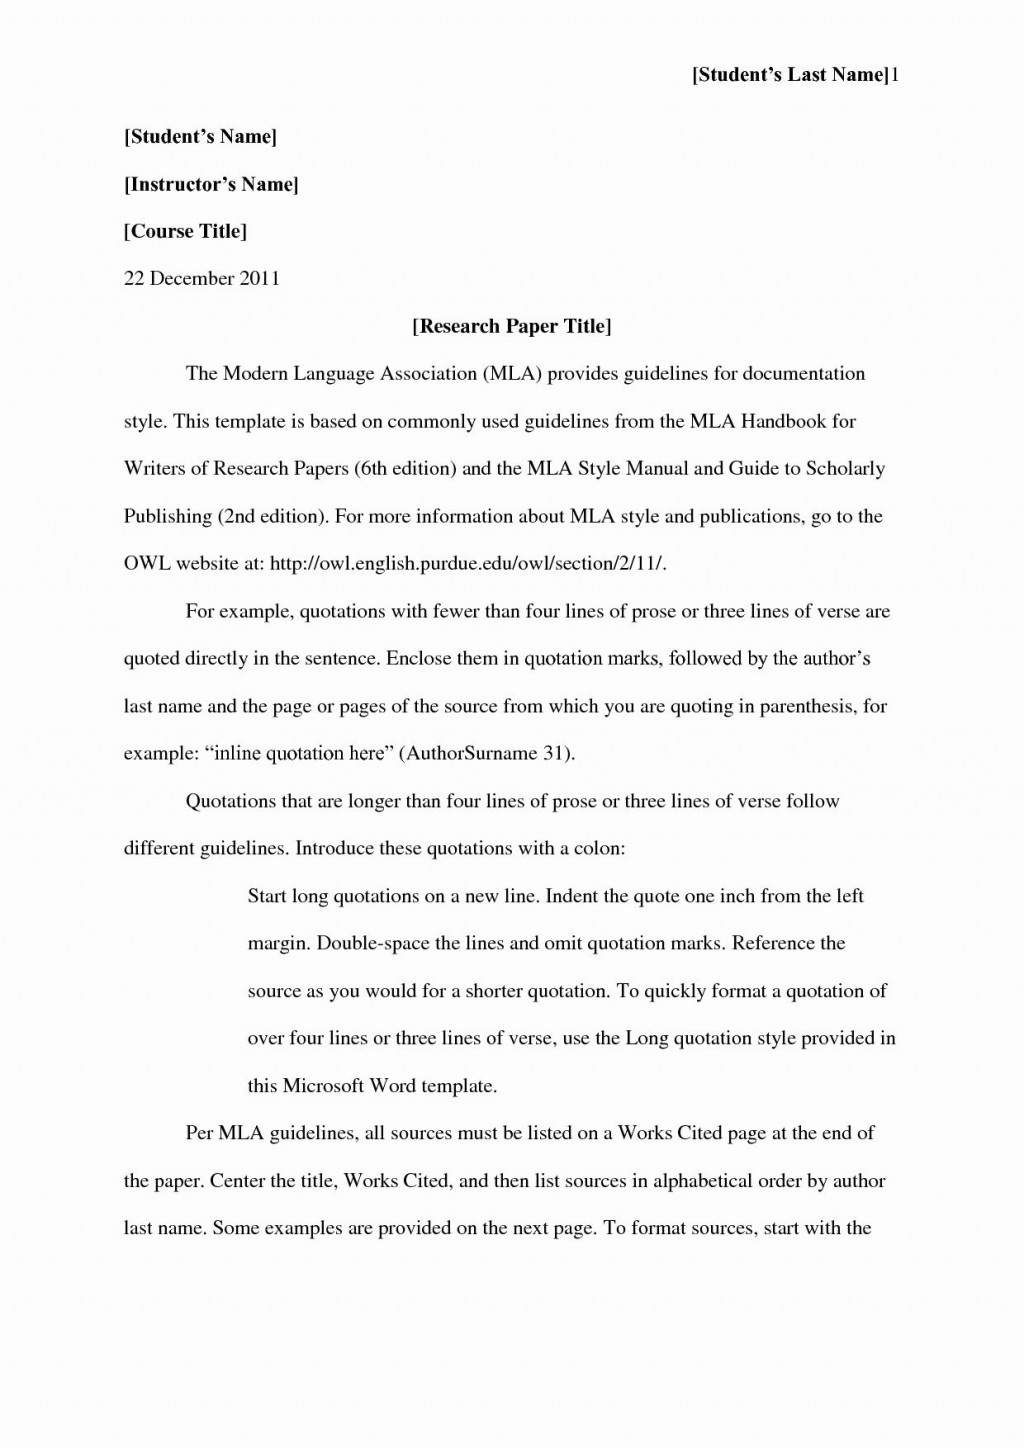 012 Mla Title Page Template Awesome Format Works Cited Scarlet Letter Best Of Apa Style Essay Research Impressive Generator Example Reference Interview Large